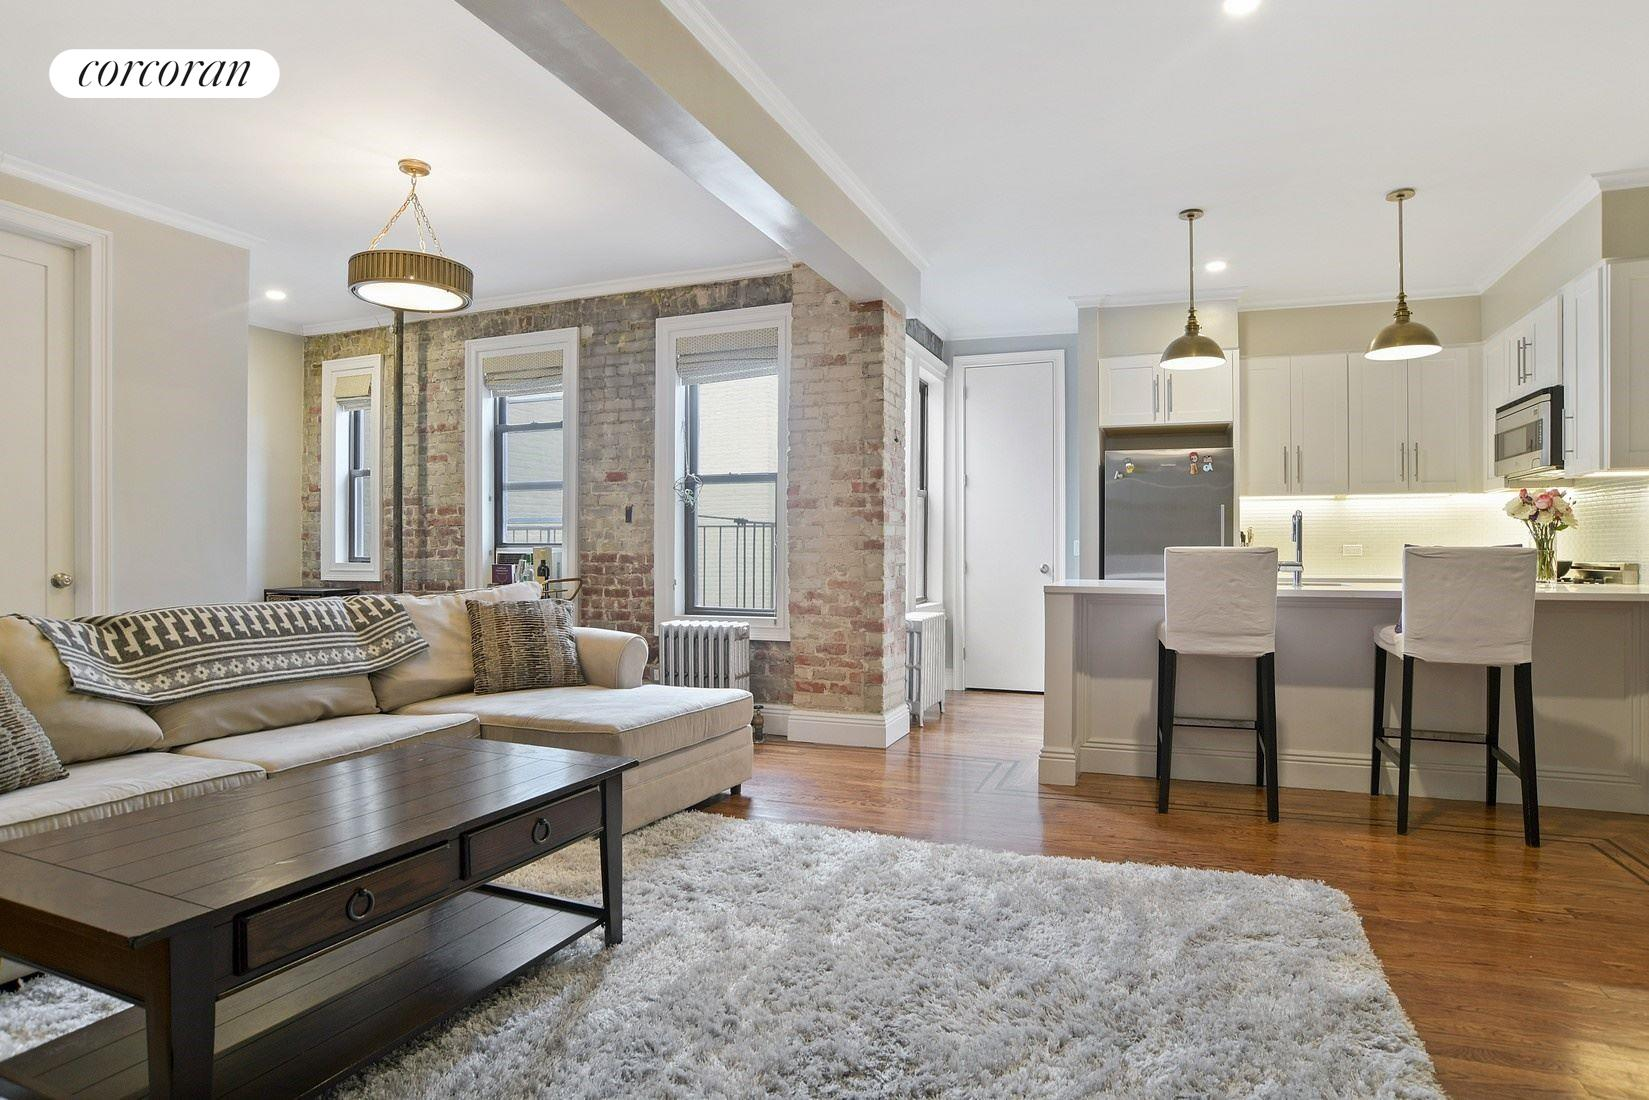 Corcoran, Justin Tierney, Williamsburg 245 Bedford Avenue Realtor, Real  Estate Agent, Broker, Referral, Experience, New York, Manhattan, Brooklyn